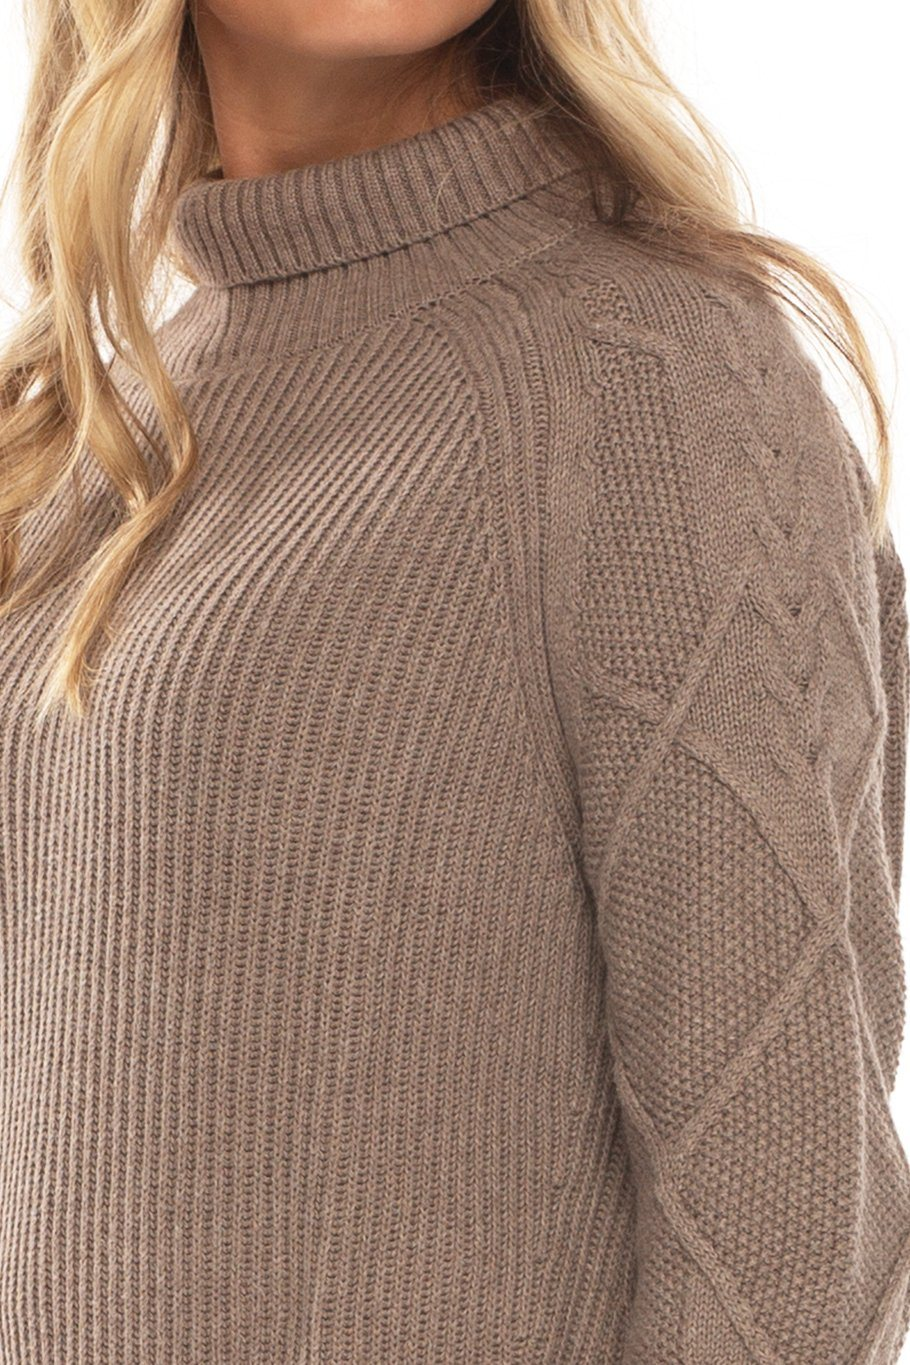 Banff Turtle Neck Sweater - Taupe - Shore